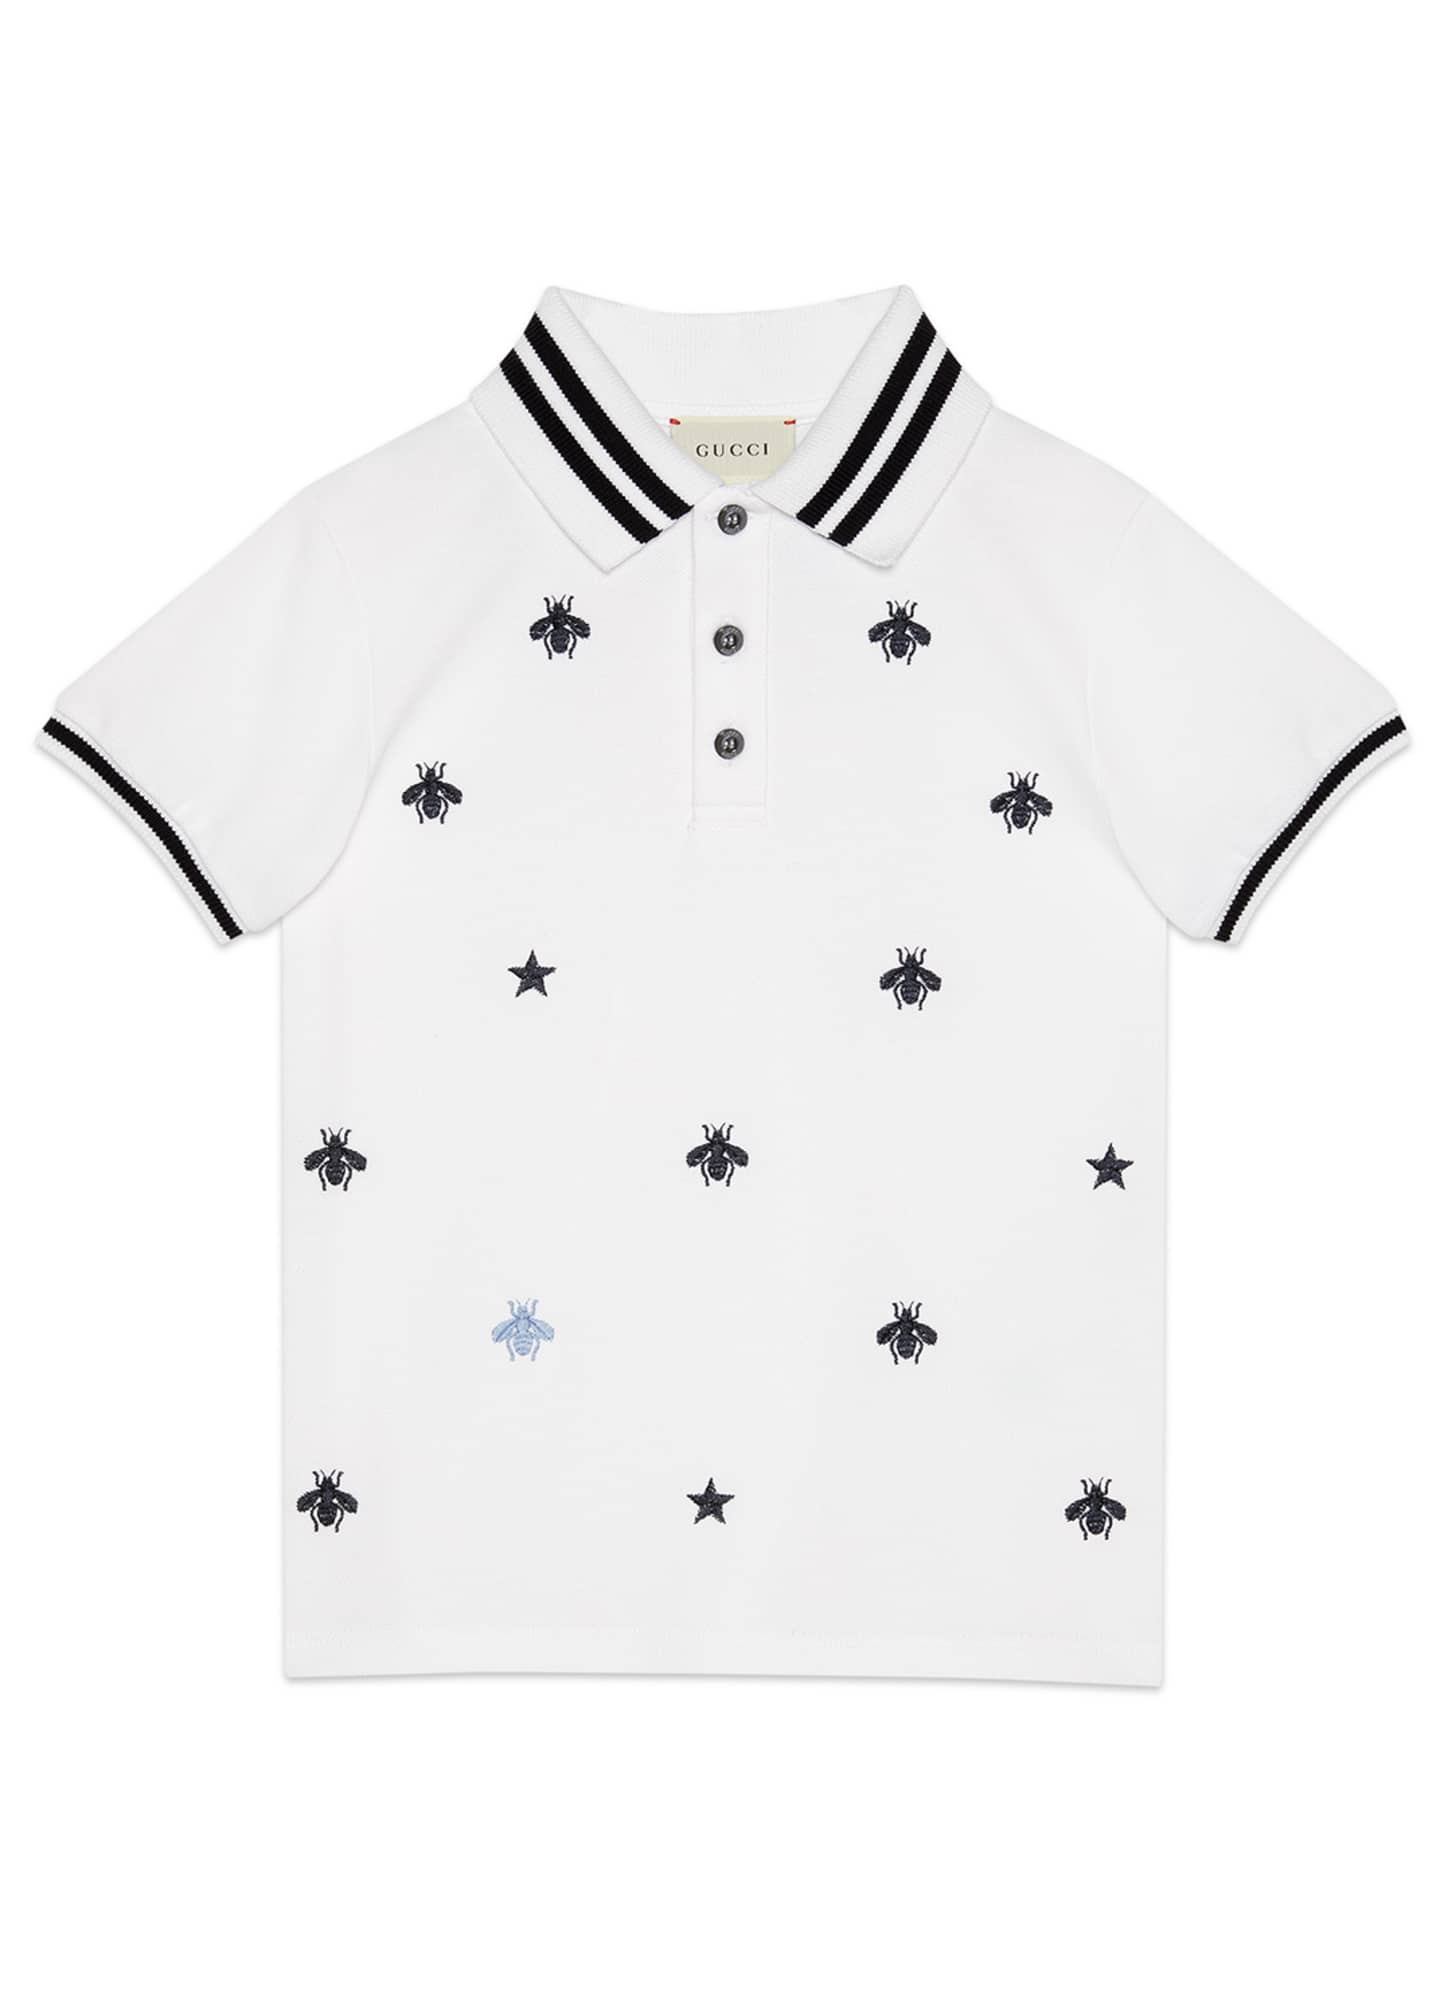 Gucci Bees & Stars Embroidered Polo Shirt, Size